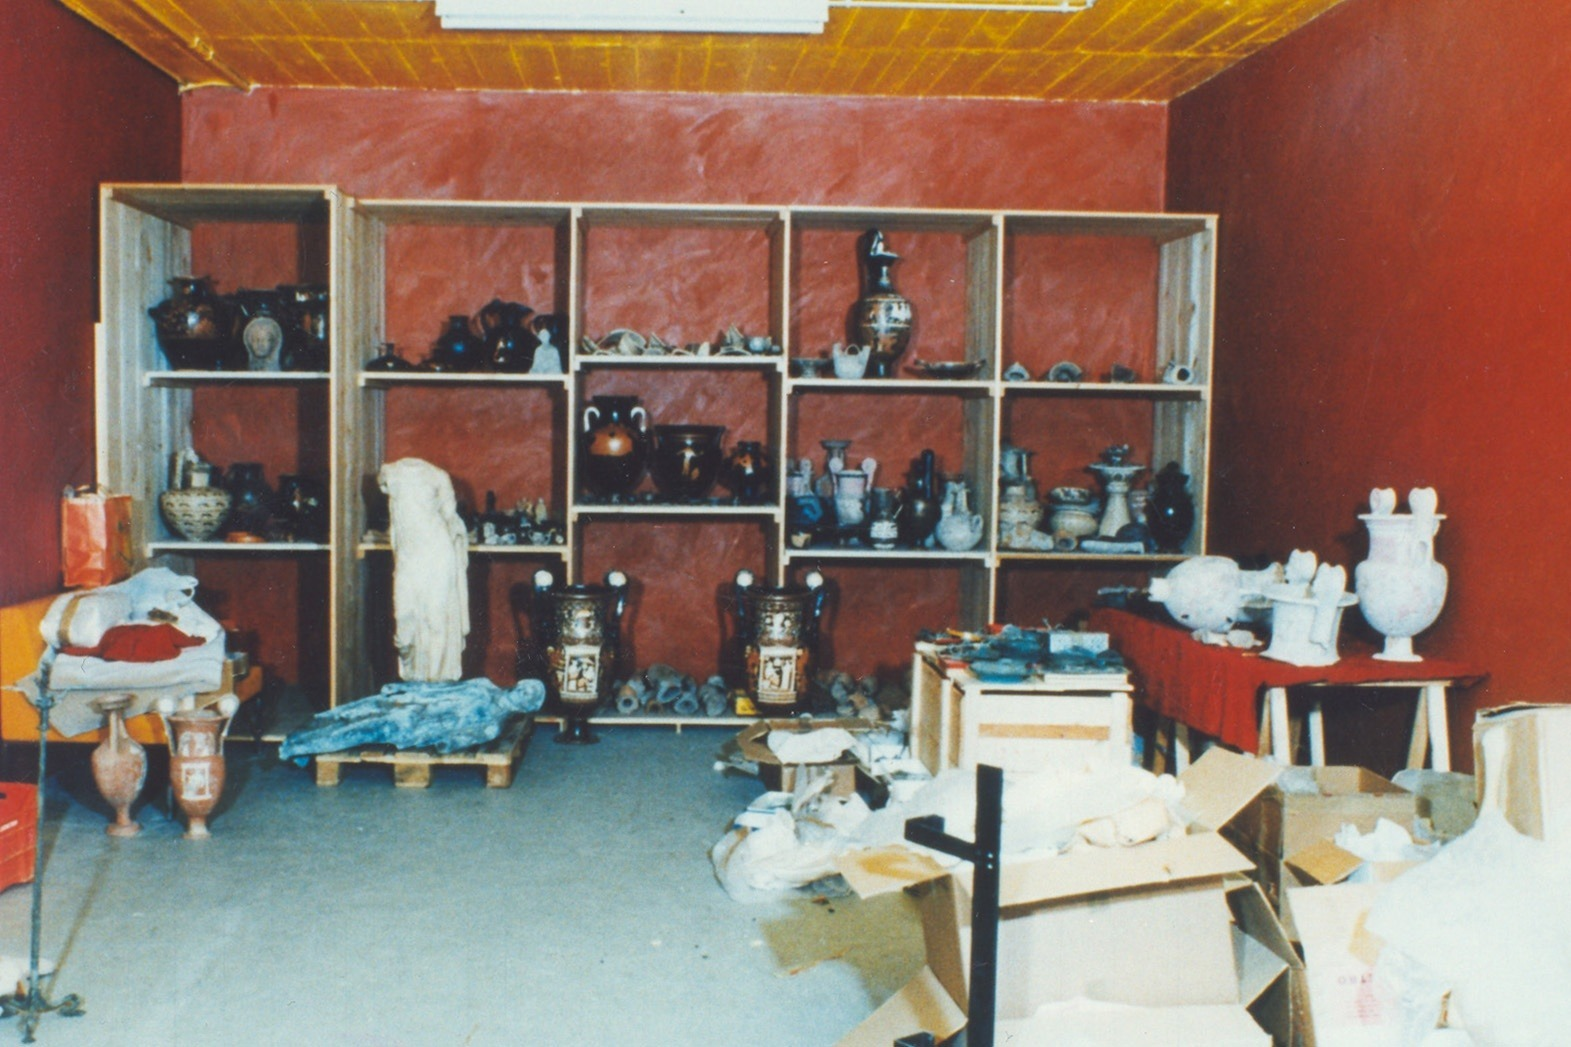 Photograph of the interior of Medica's warehouse in the Geneva Freeport